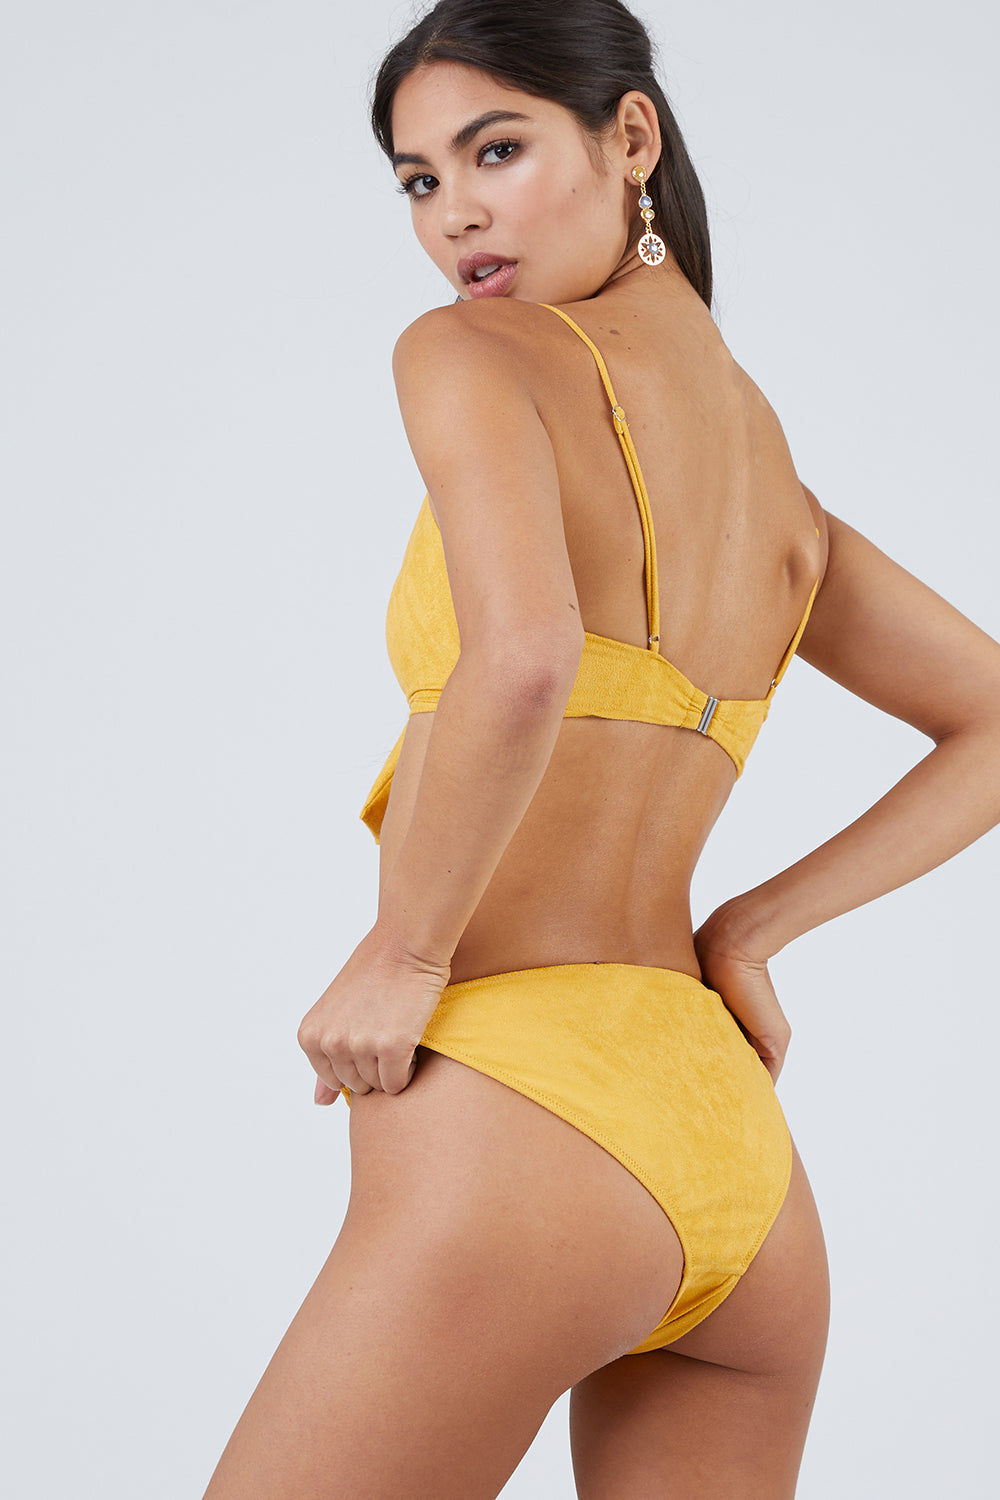 MONICA HANSEN BEACHWEAR Start Me Up Suede Front Scrunch Bikini Bottom - Yellow Bikini Bottom | Yellow| Monica Hansen Start Me Up Suede Front Scrunch Bikini Bottom - Yellow Scrunch detail in front and U shaped back High cut leg Cheeky coverage Double fabric on the inside instead of lining Italian fabric 85% Nylon 15% Elastane Manufactured in Italy Hand wash cold.  Dry flat Back View